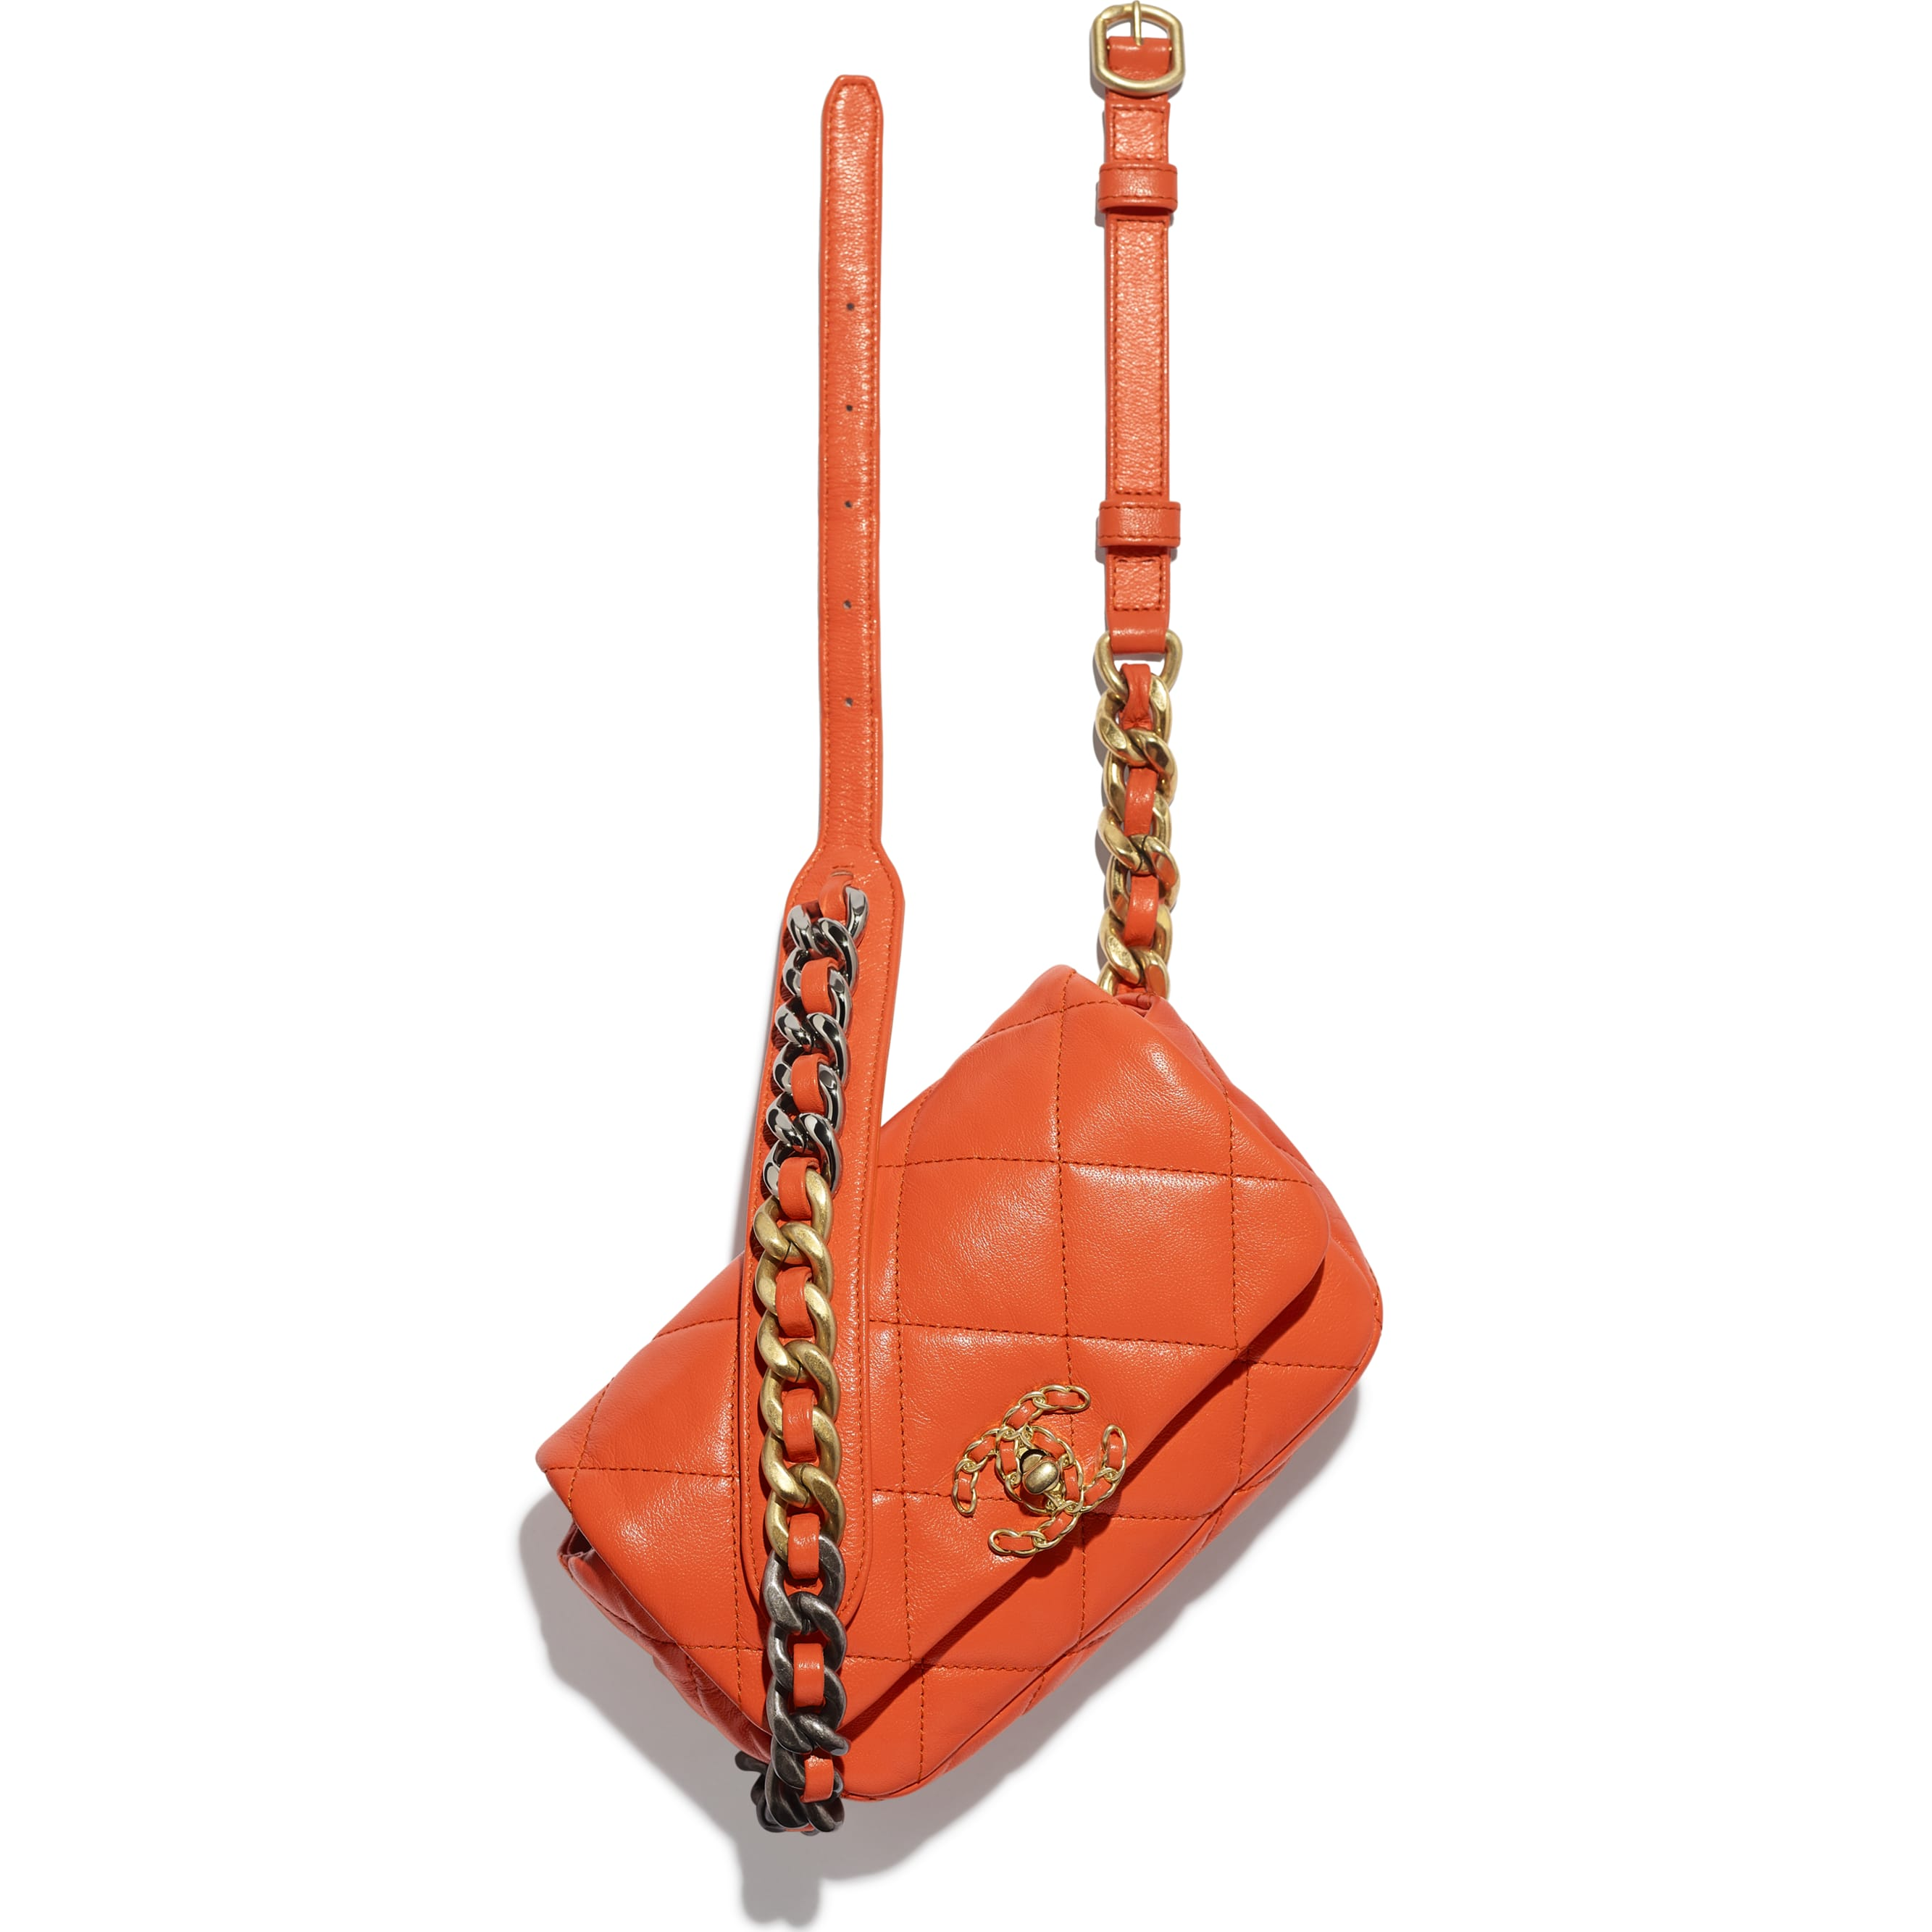 CHANEL 19 Waist Bag - Orange - Lambskin, Gold-Tone, Silver-Tone & Ruthenium-Finish Metal - Extra view - see standard sized version